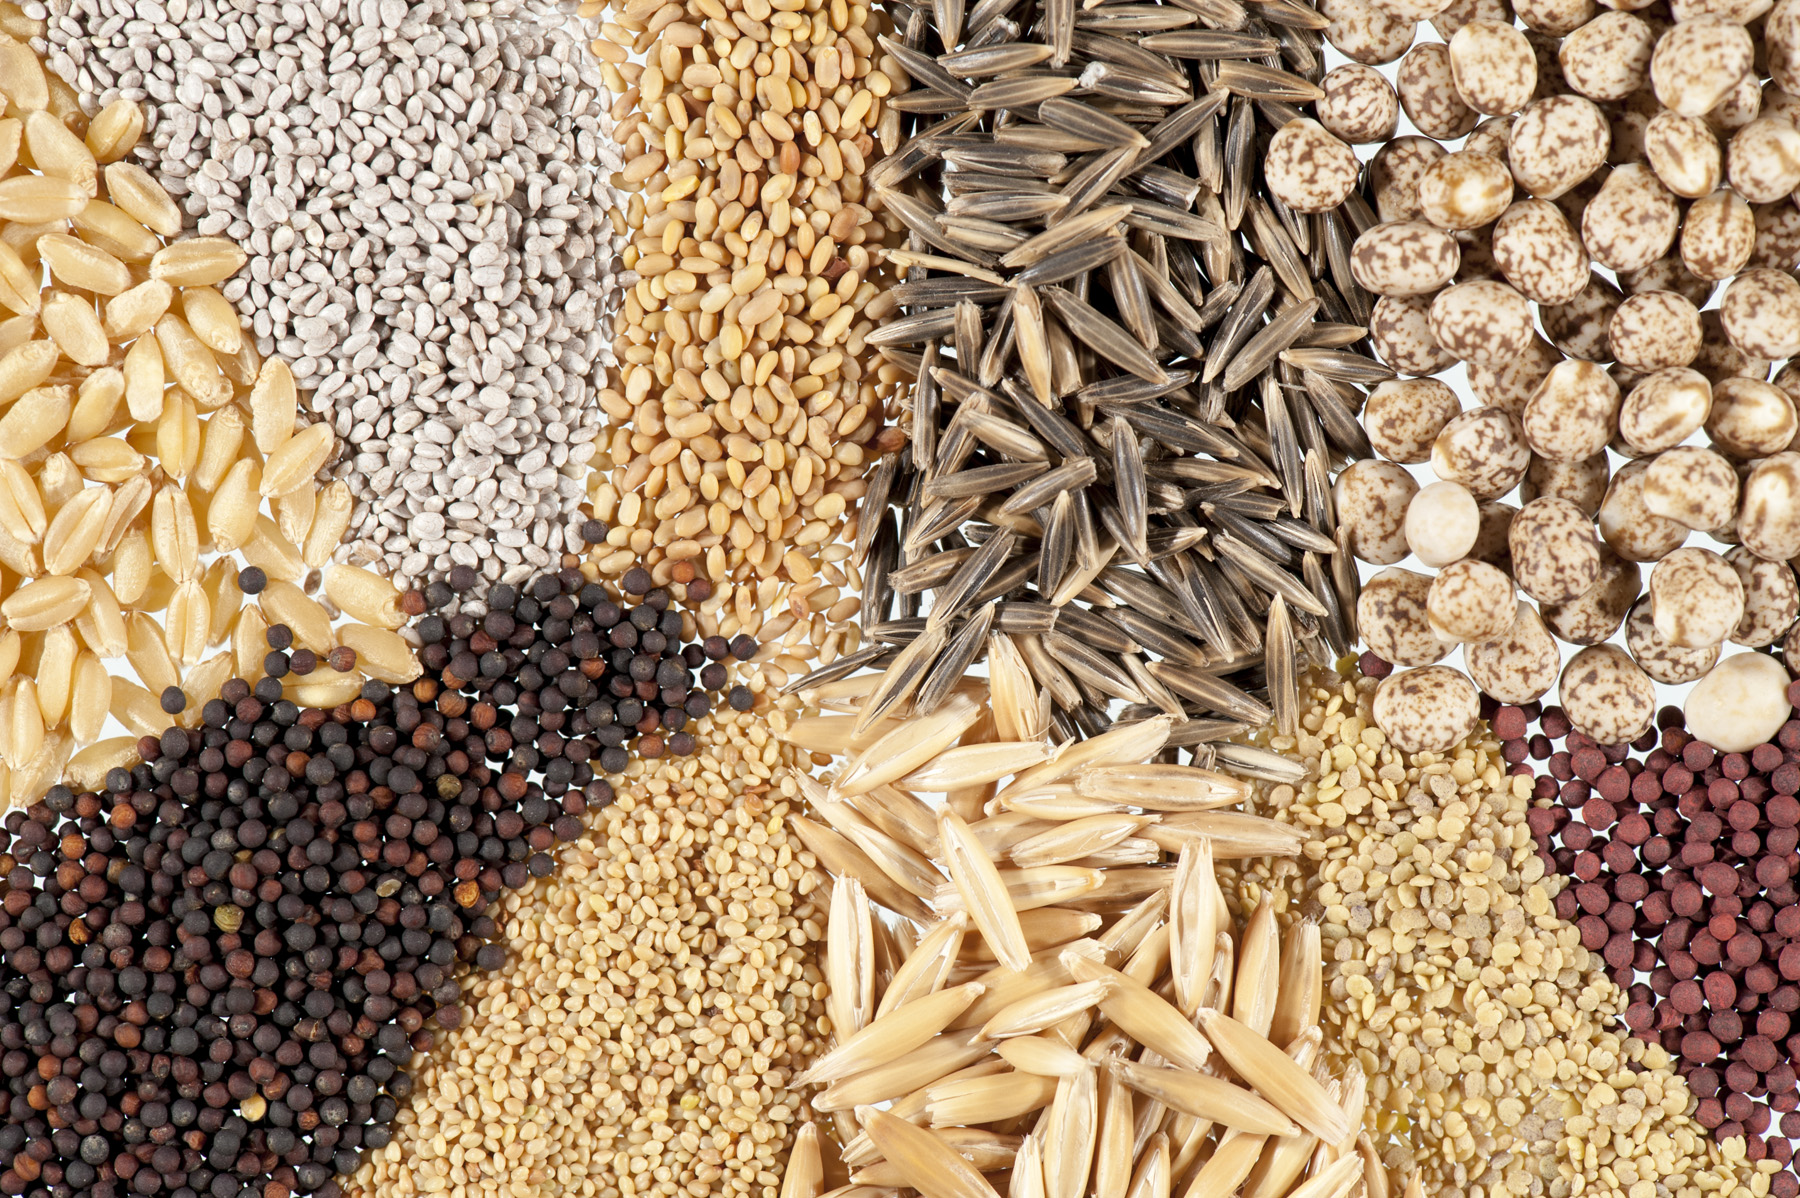 List of Top 5 Key Players in Global Seeds Market 2019